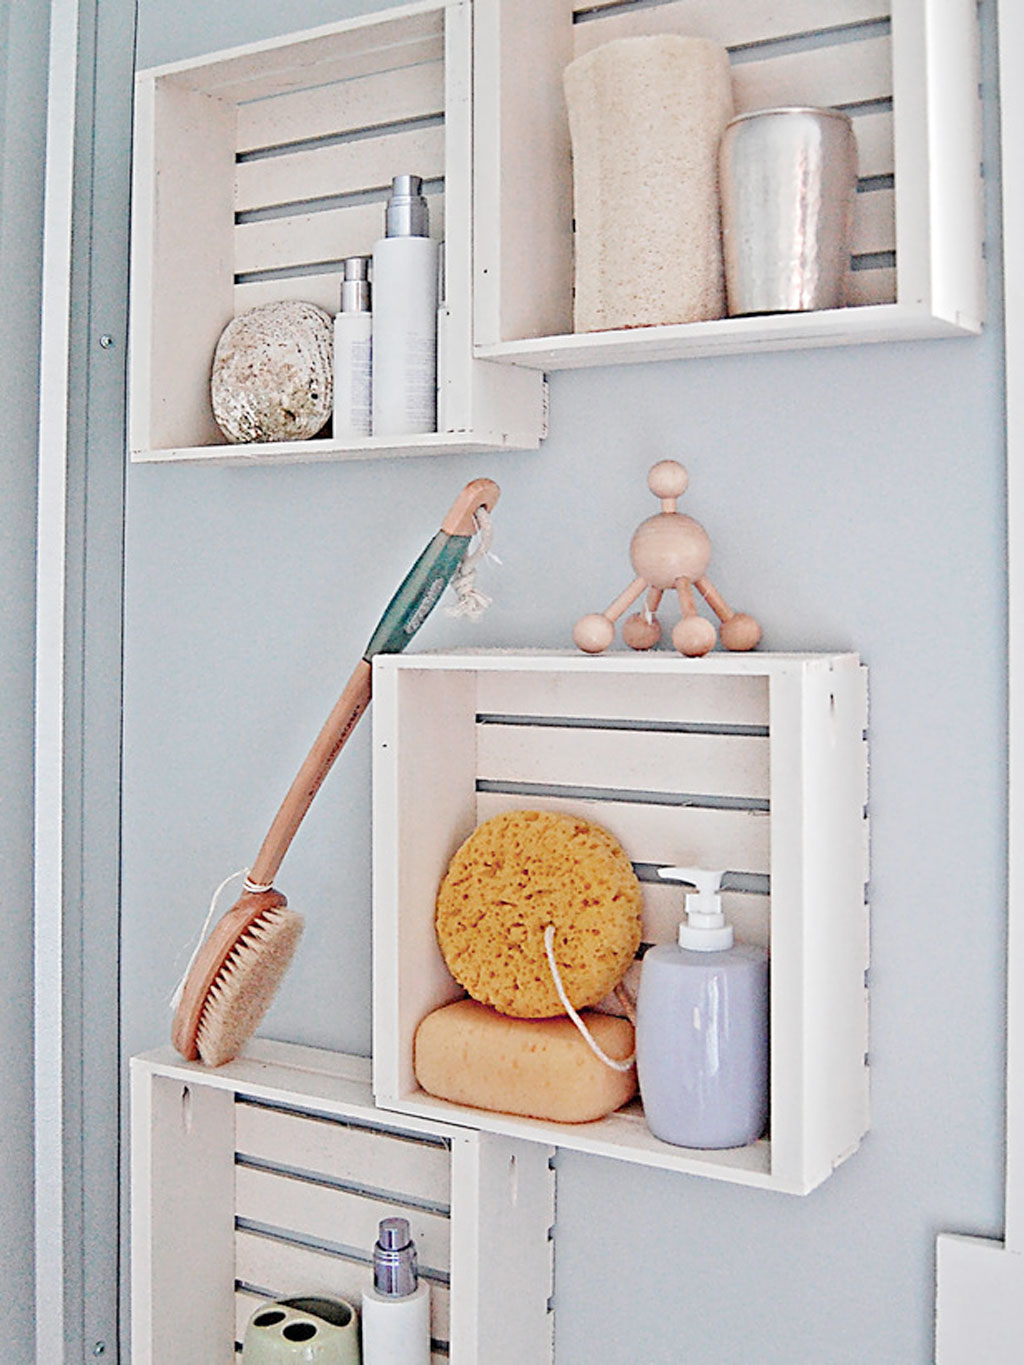 Small Bathroom Towel Storage Ideas Best Hanging - Bathroom towel storage for small bathroom ideas